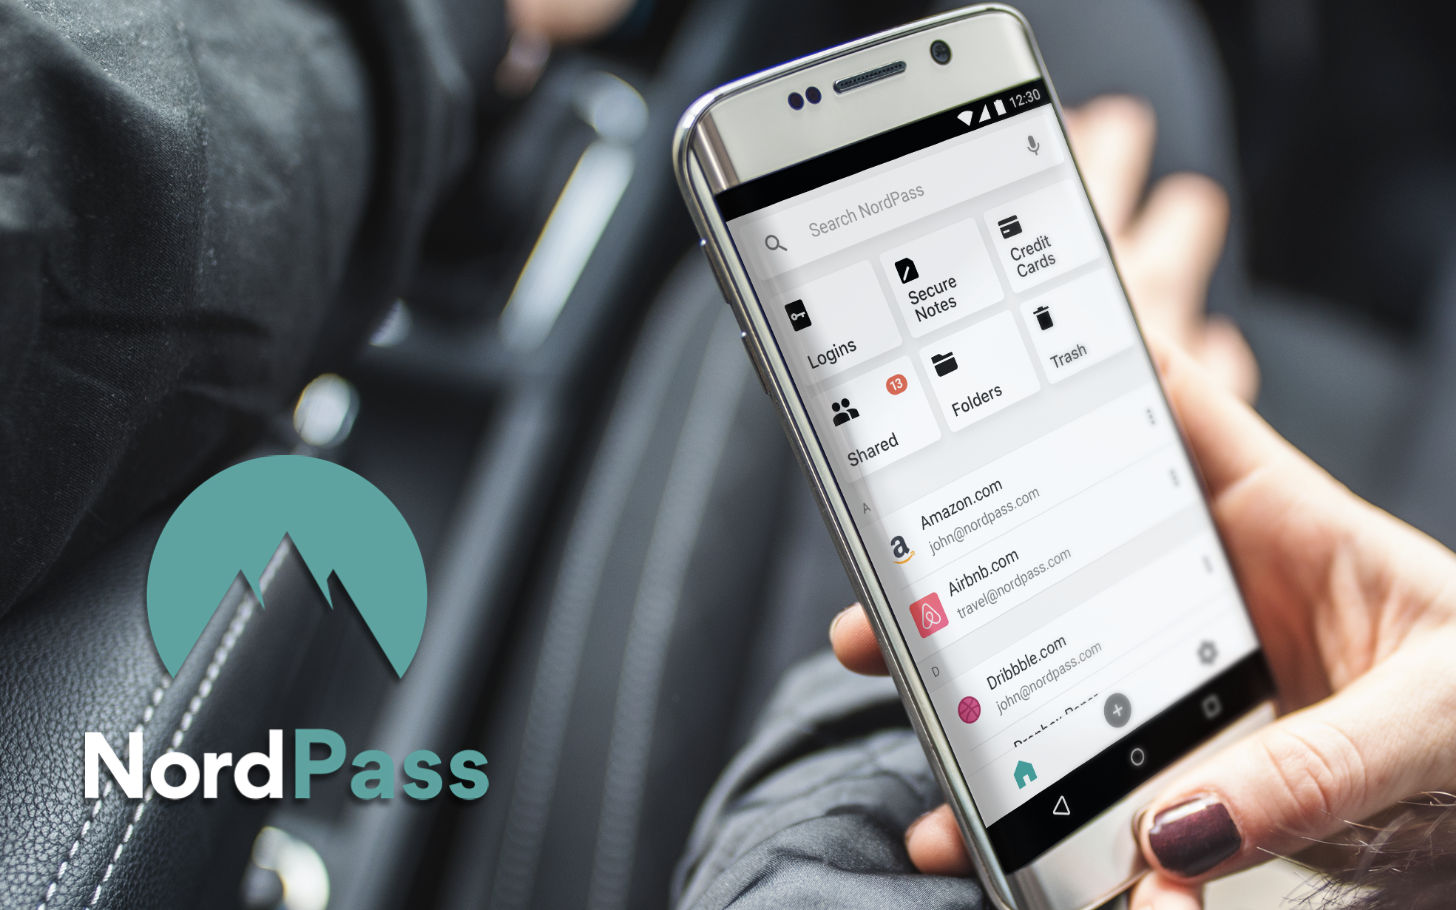 NordPass is a next-gen password manager that keeps the keys to your digital life safe, secure, and accessible (Sponsored)